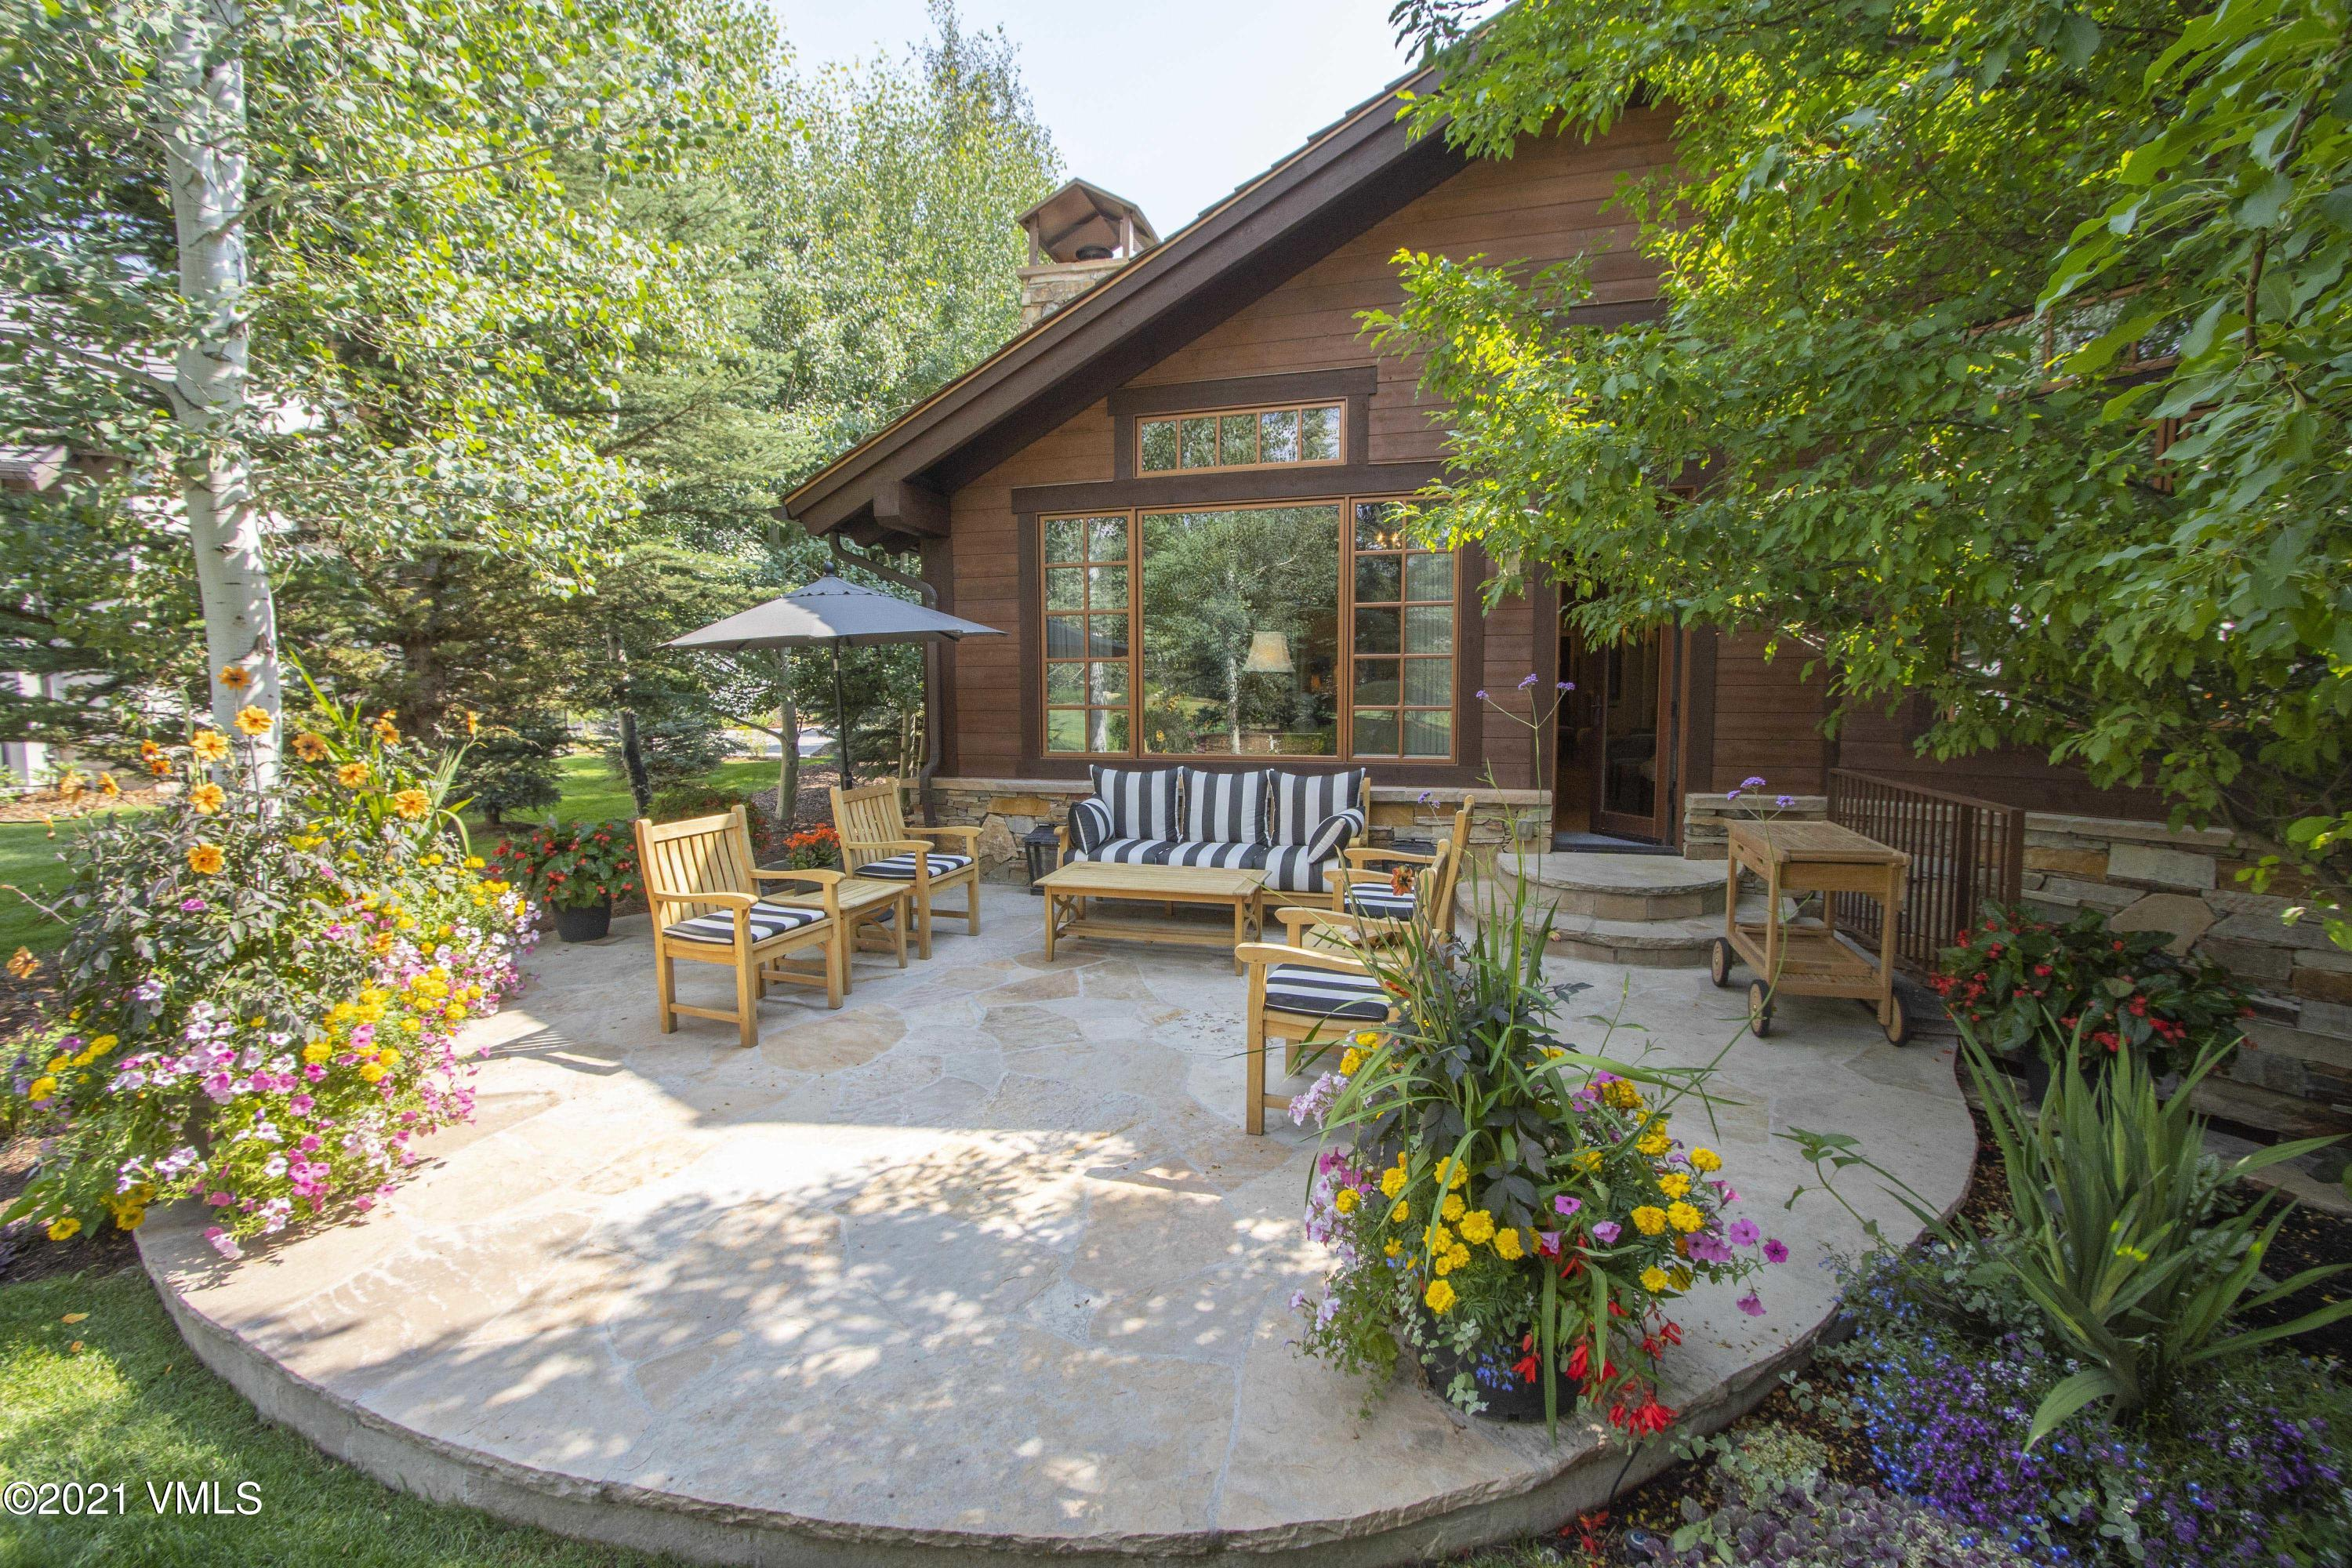 Gorgeous home with fabulous outdoor living, set on a greenbelt in Arrowhead. Beautifully remodeled with main floor living including a primary suite and office. Cozy up in the hearth room by the fireplace or head downstairs for another family room space and guest bedrooms. Lives like a single family with its own driveway.